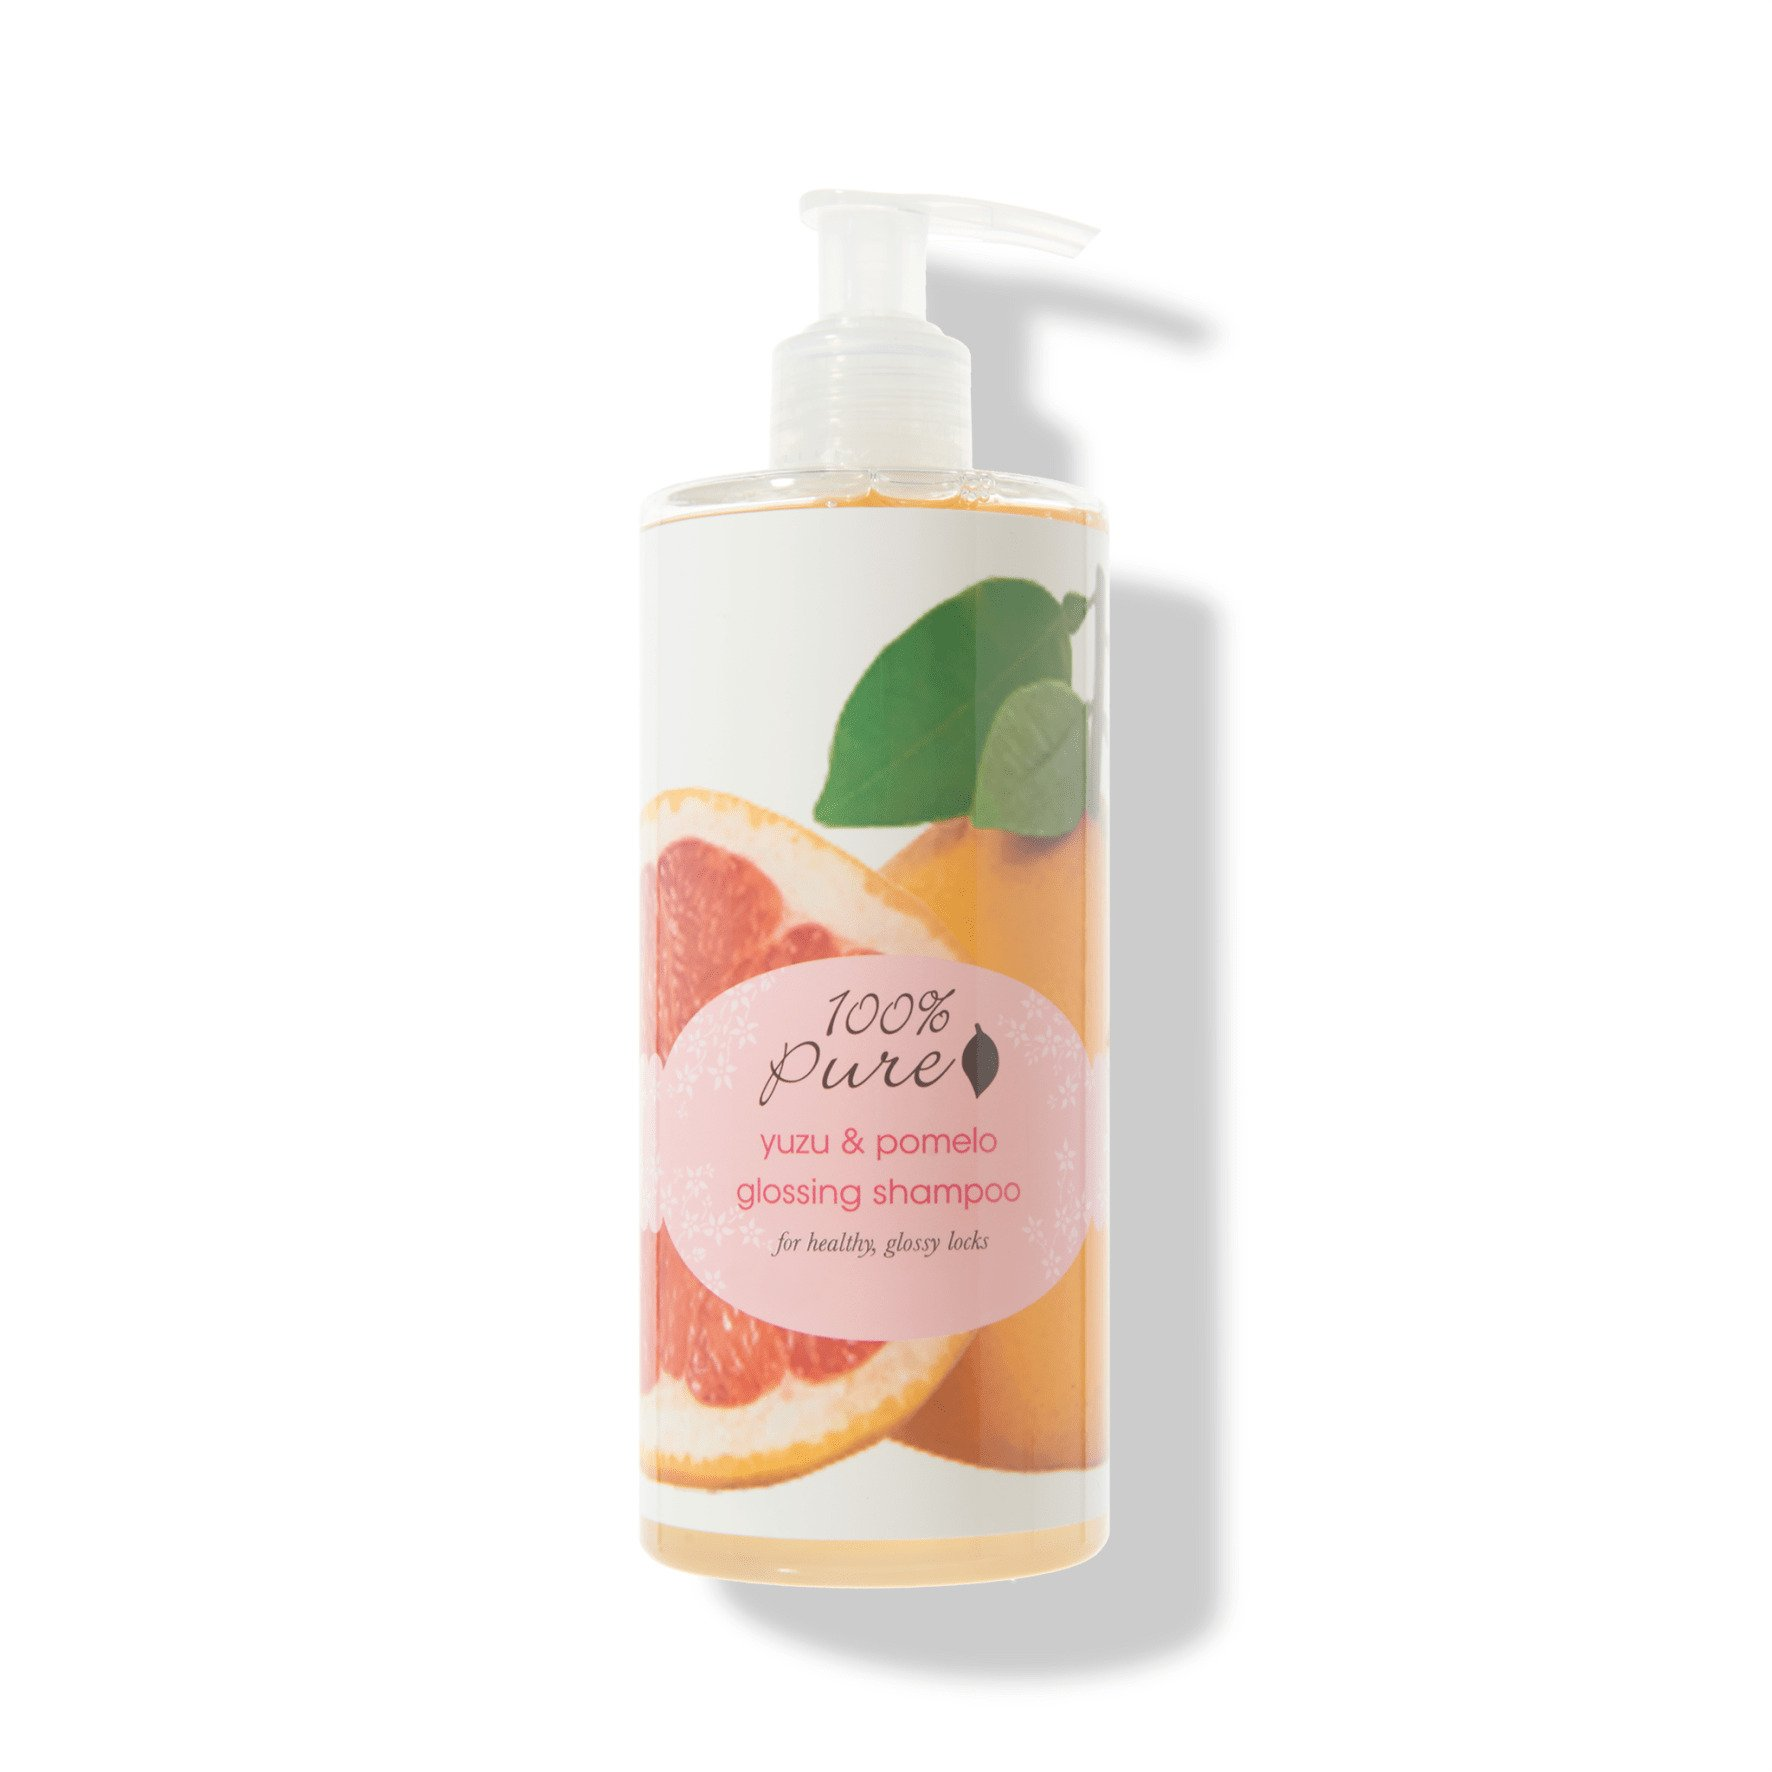 Yuzu & Pomelo Glossing Shampoo from 100% Pure